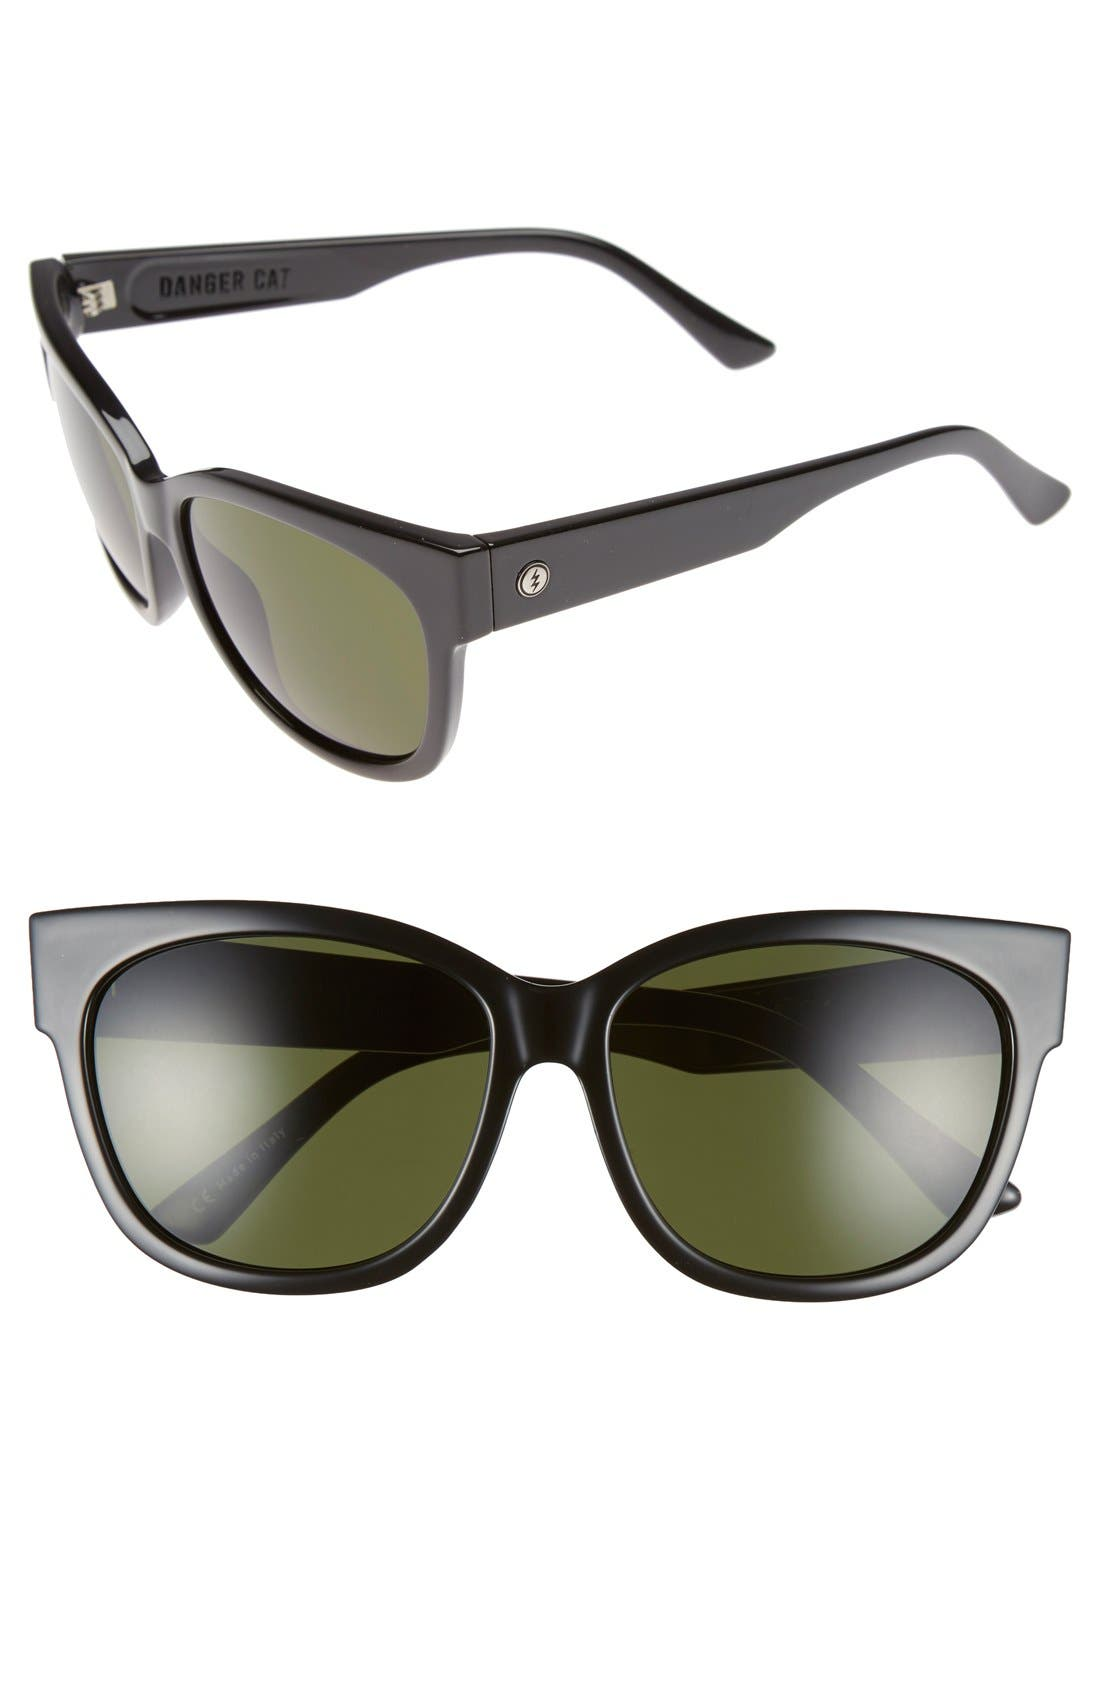 'Danger Cat' 58mm Retro Sunglasses,                             Main thumbnail 2, color,